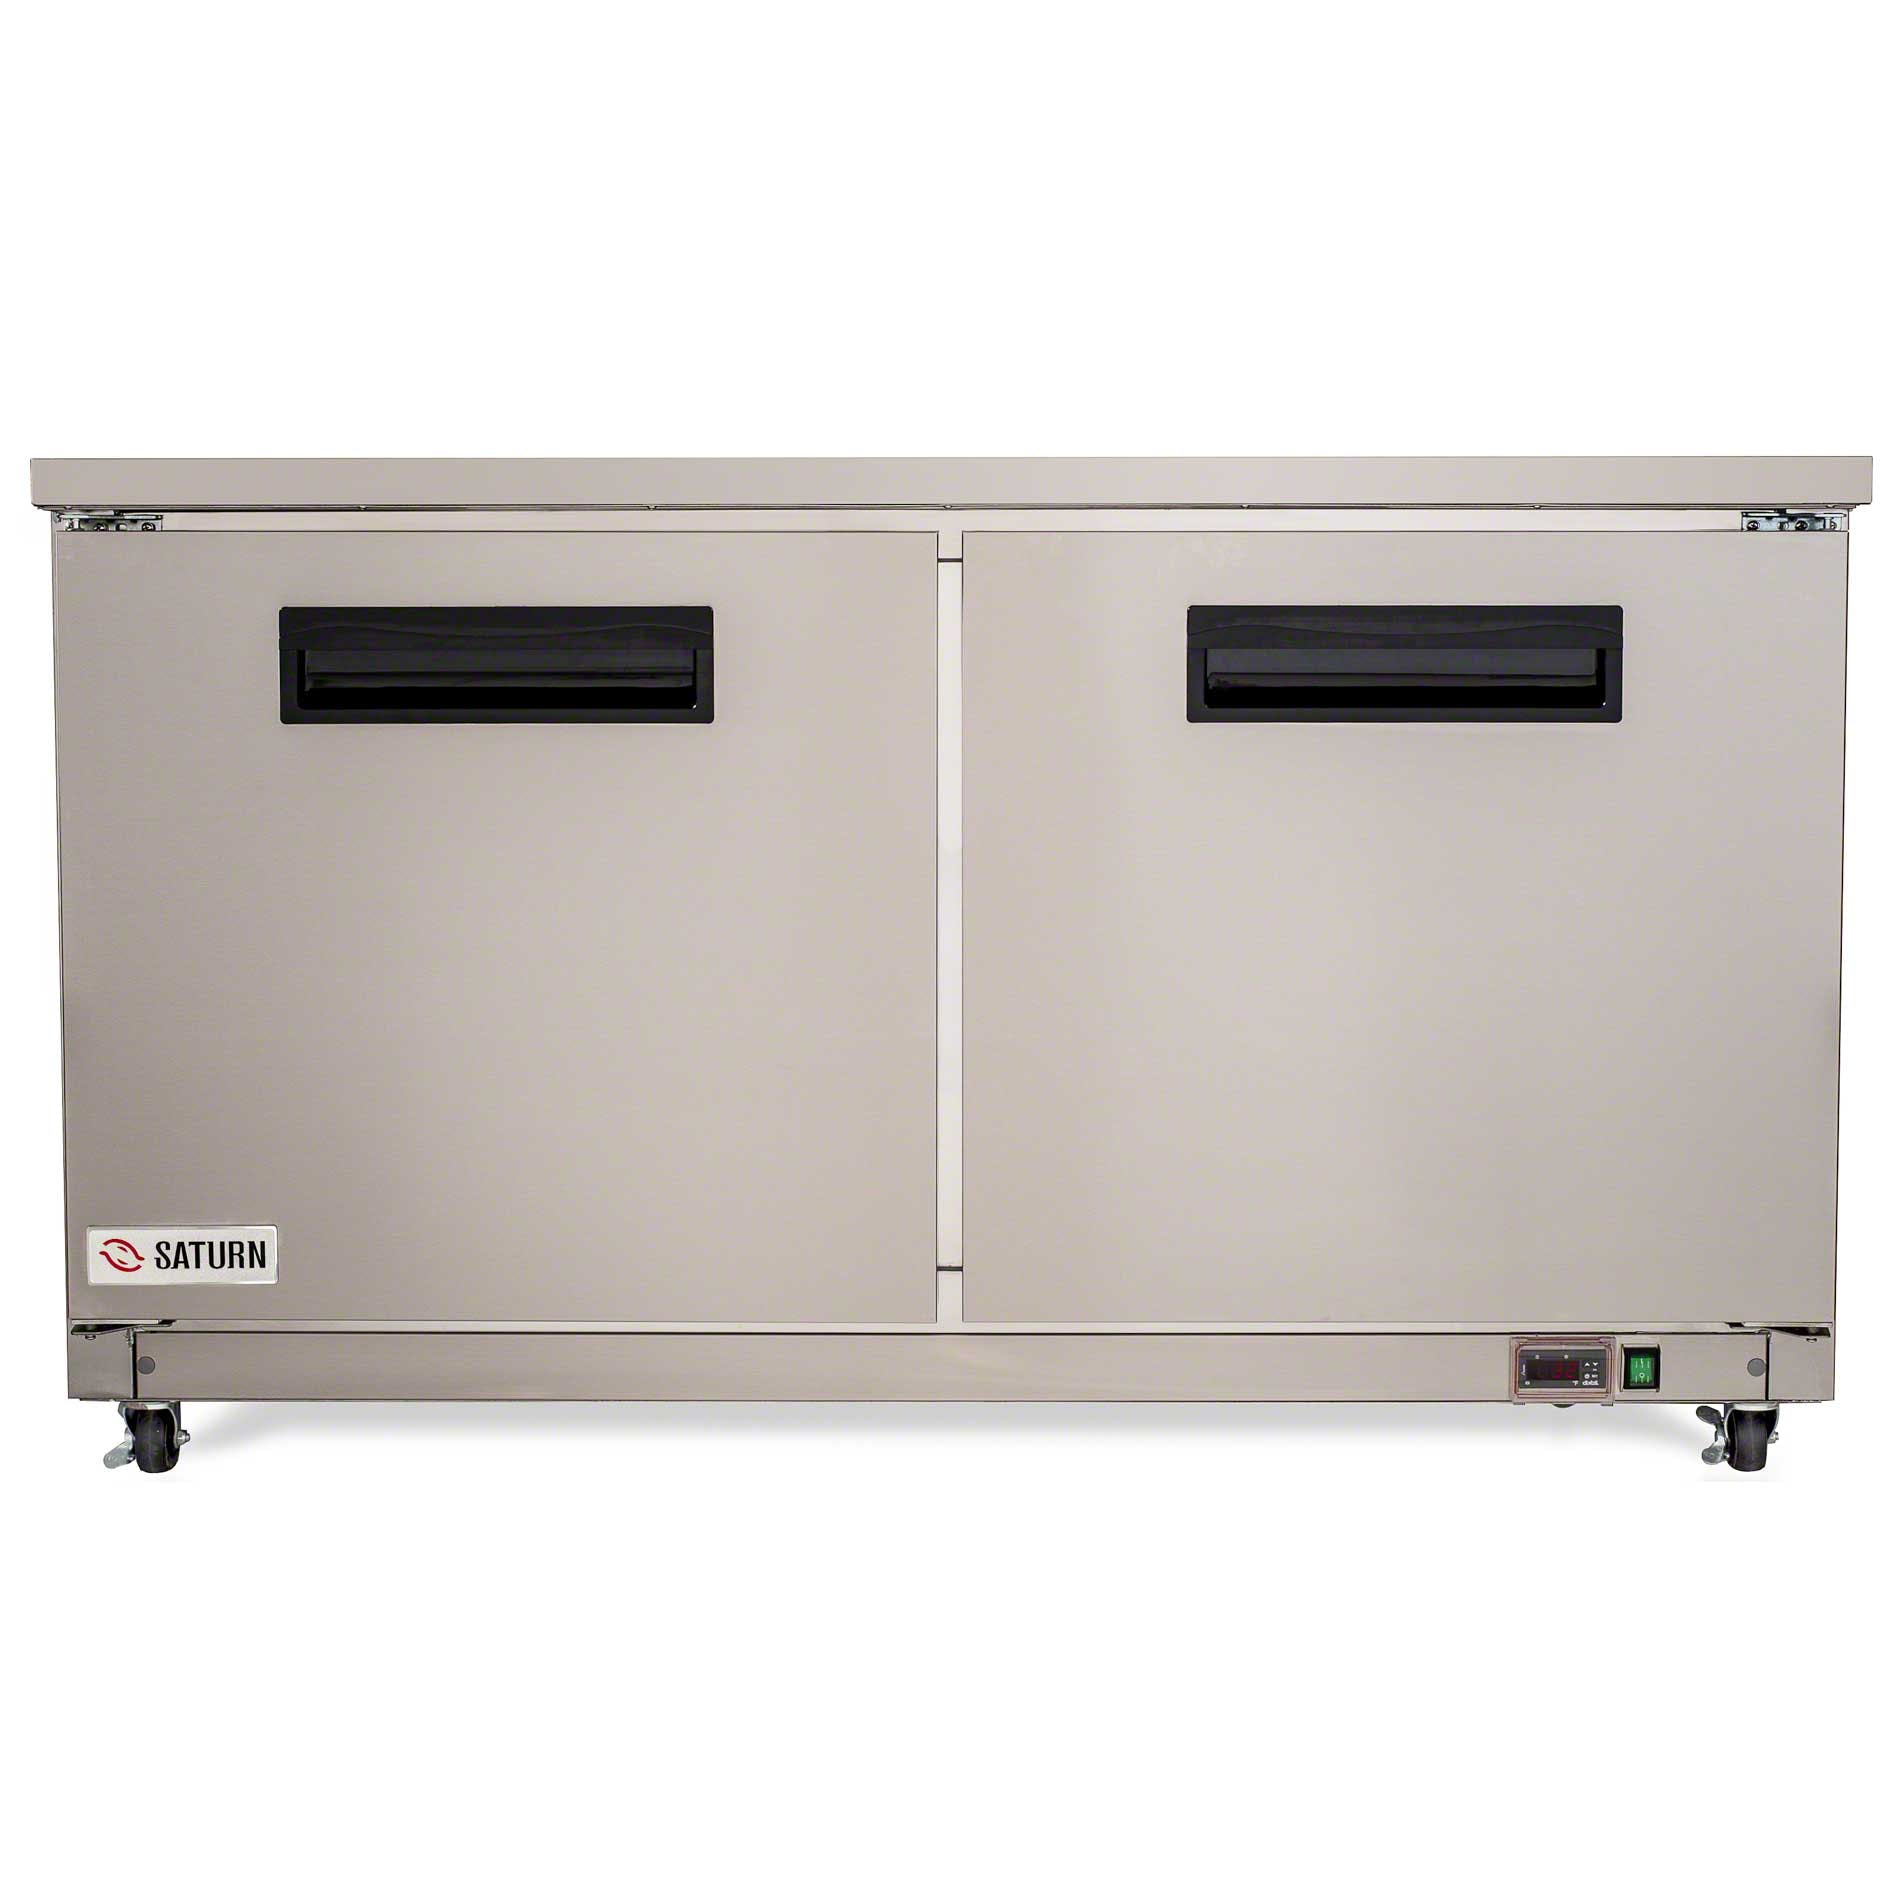 "Saturn Equipment - PUC60R 61"" Undercounter Refrigerator - Value Series Commercial refrigerator sold by Food Service Warehouse"